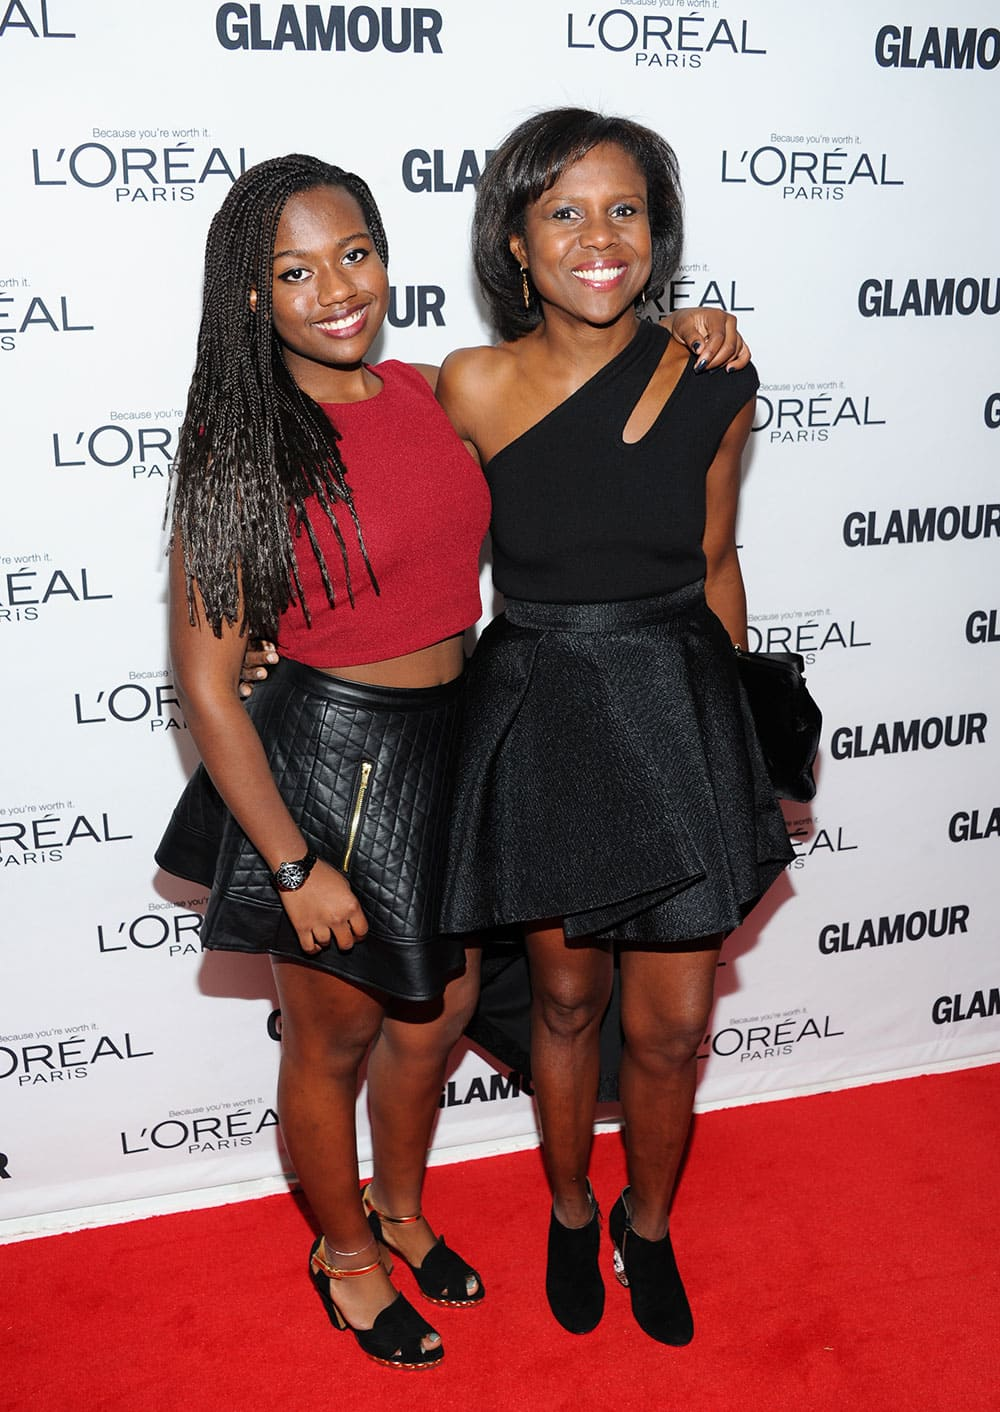 Television journalist Deborah Roberts and her daughter Leila Roker attend the 23rd Annual Glamour Women of the Year Awards hosted by Glamour Magazine at Carnegie Hall in New York.